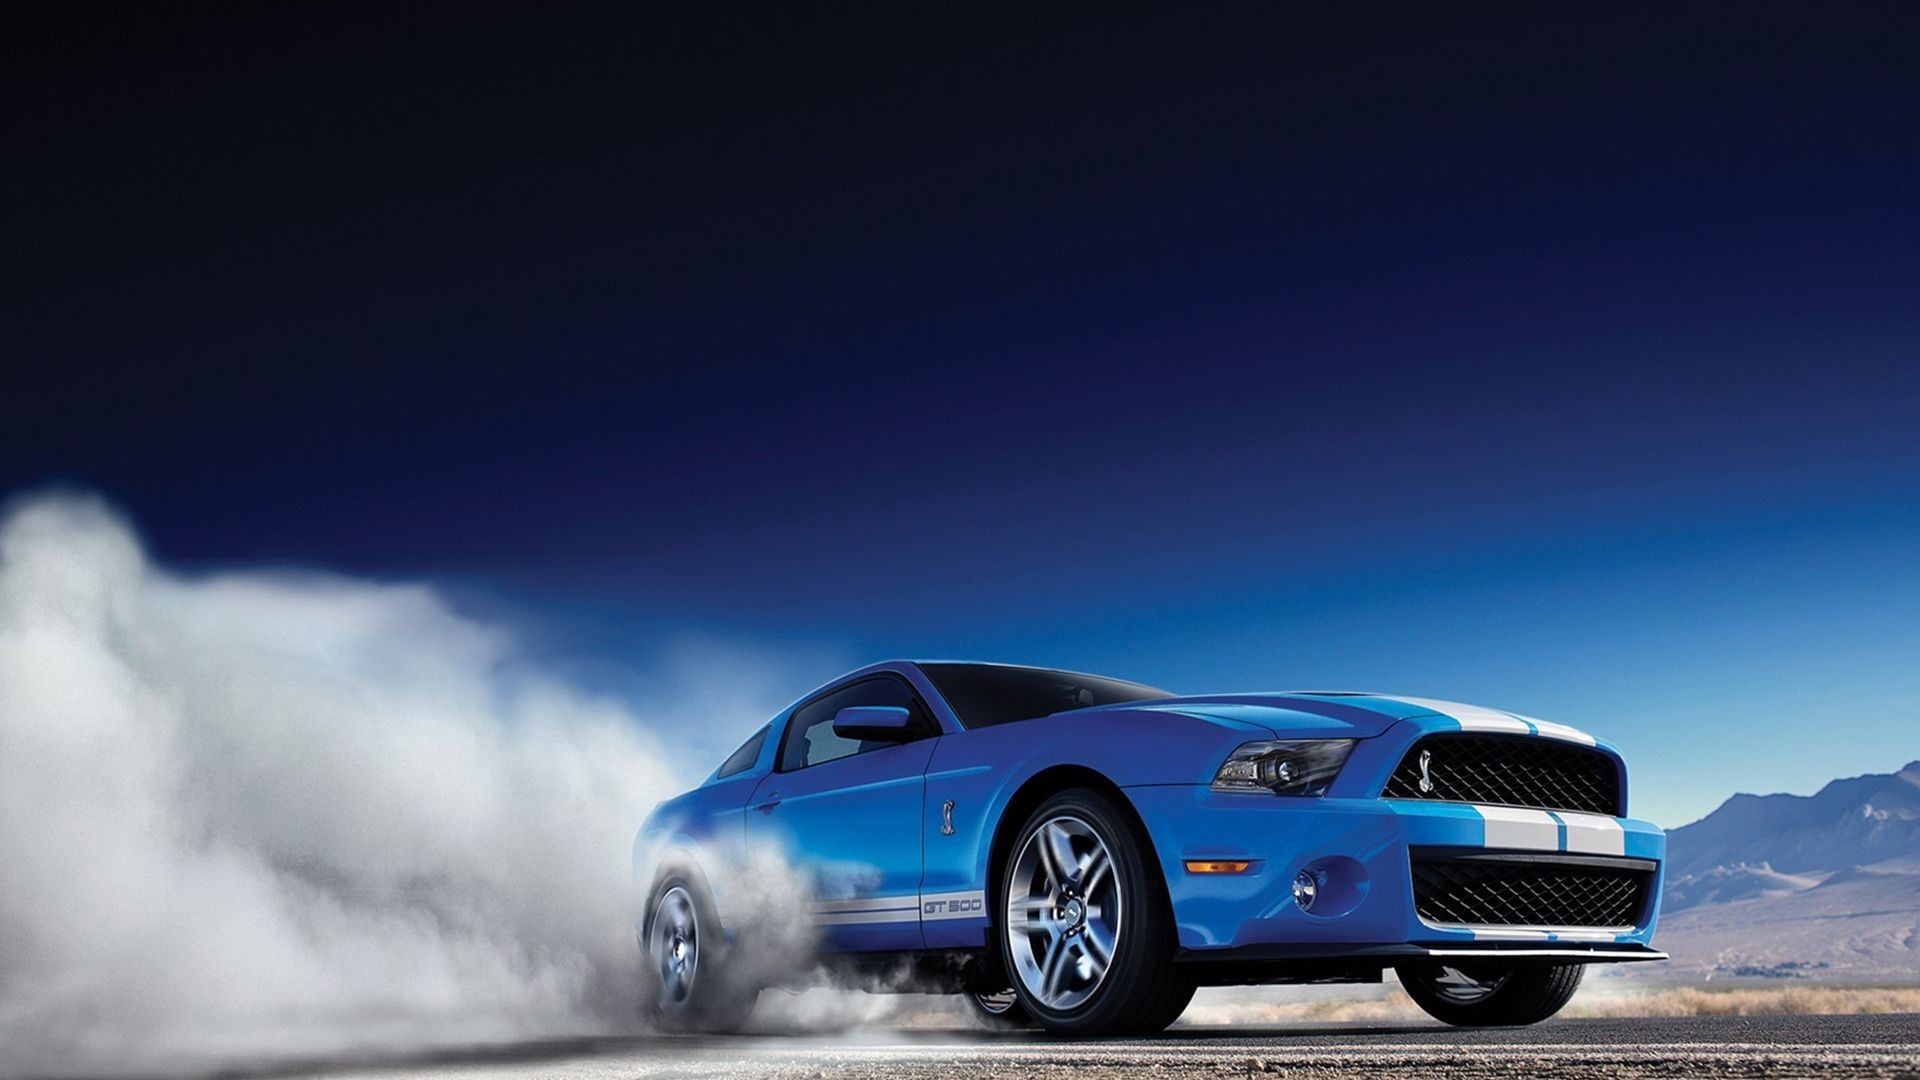 Amazing Ford Logo Wallpapers Wallpaper Cave With Mustang Iphone Jpg 1920x1080